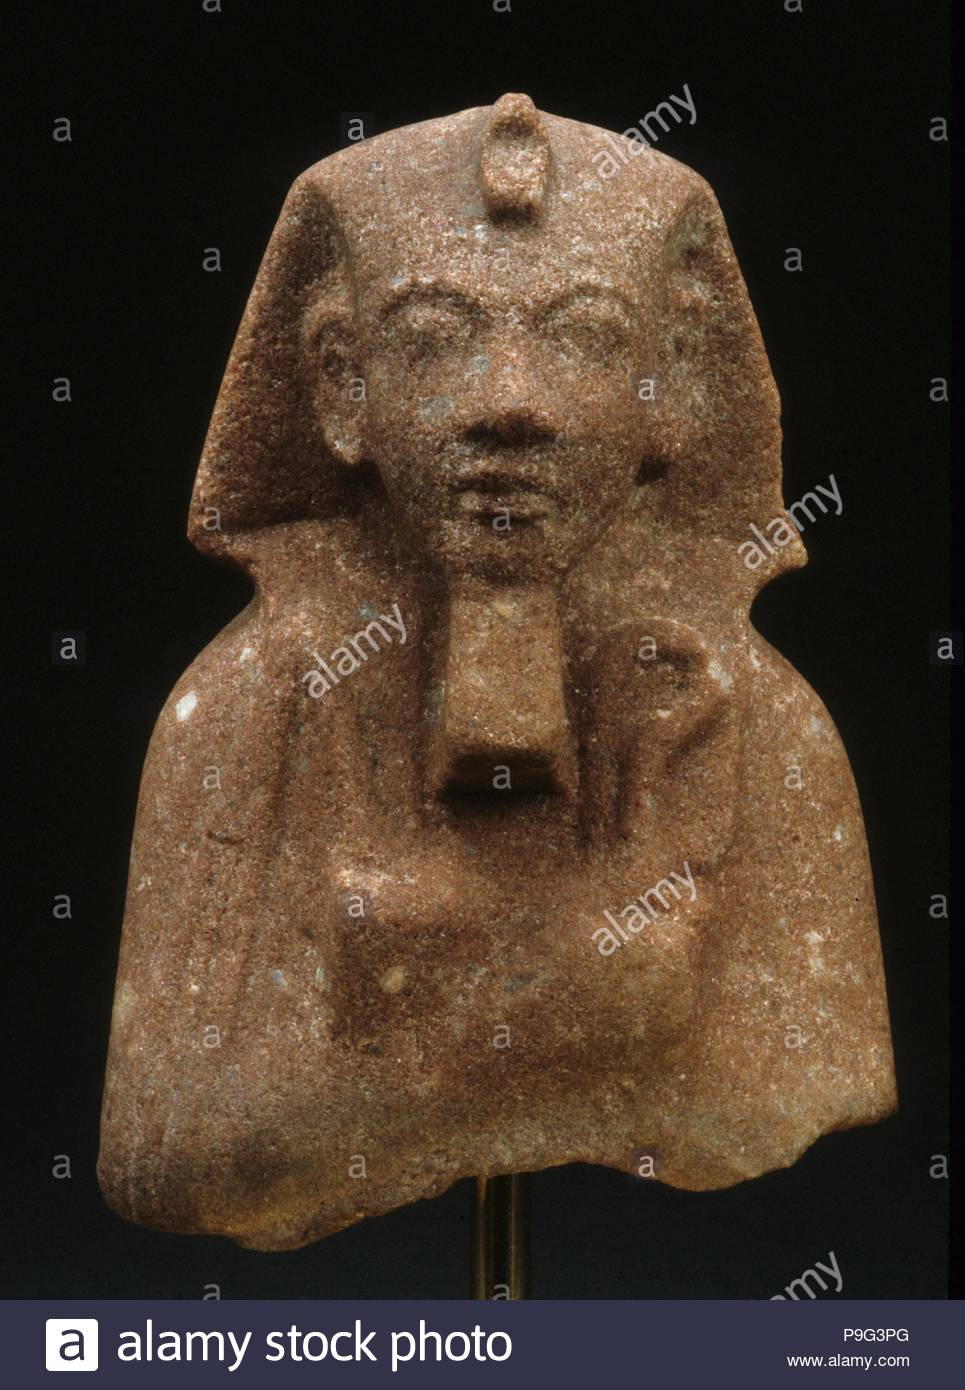 Funerary Figure of Akhenaten, New Kingdom, Amarna Period, Dynasty 18, ca. 1353–1336 B.C., From Egypt; Probably from Middle Egypt, Amarna (Akhetaten), Quartzite (red), h. 10.1 cm (4 in.), Although it lacks an inscription, this shabti is easily recognizable as Akhenaten. The nemes headcloth and the crook and flail shown on this example are more traditional shabti attributes than the khat headcloth and the ankh hieroglyphs found on other funerary figures of this king. - Stock Image